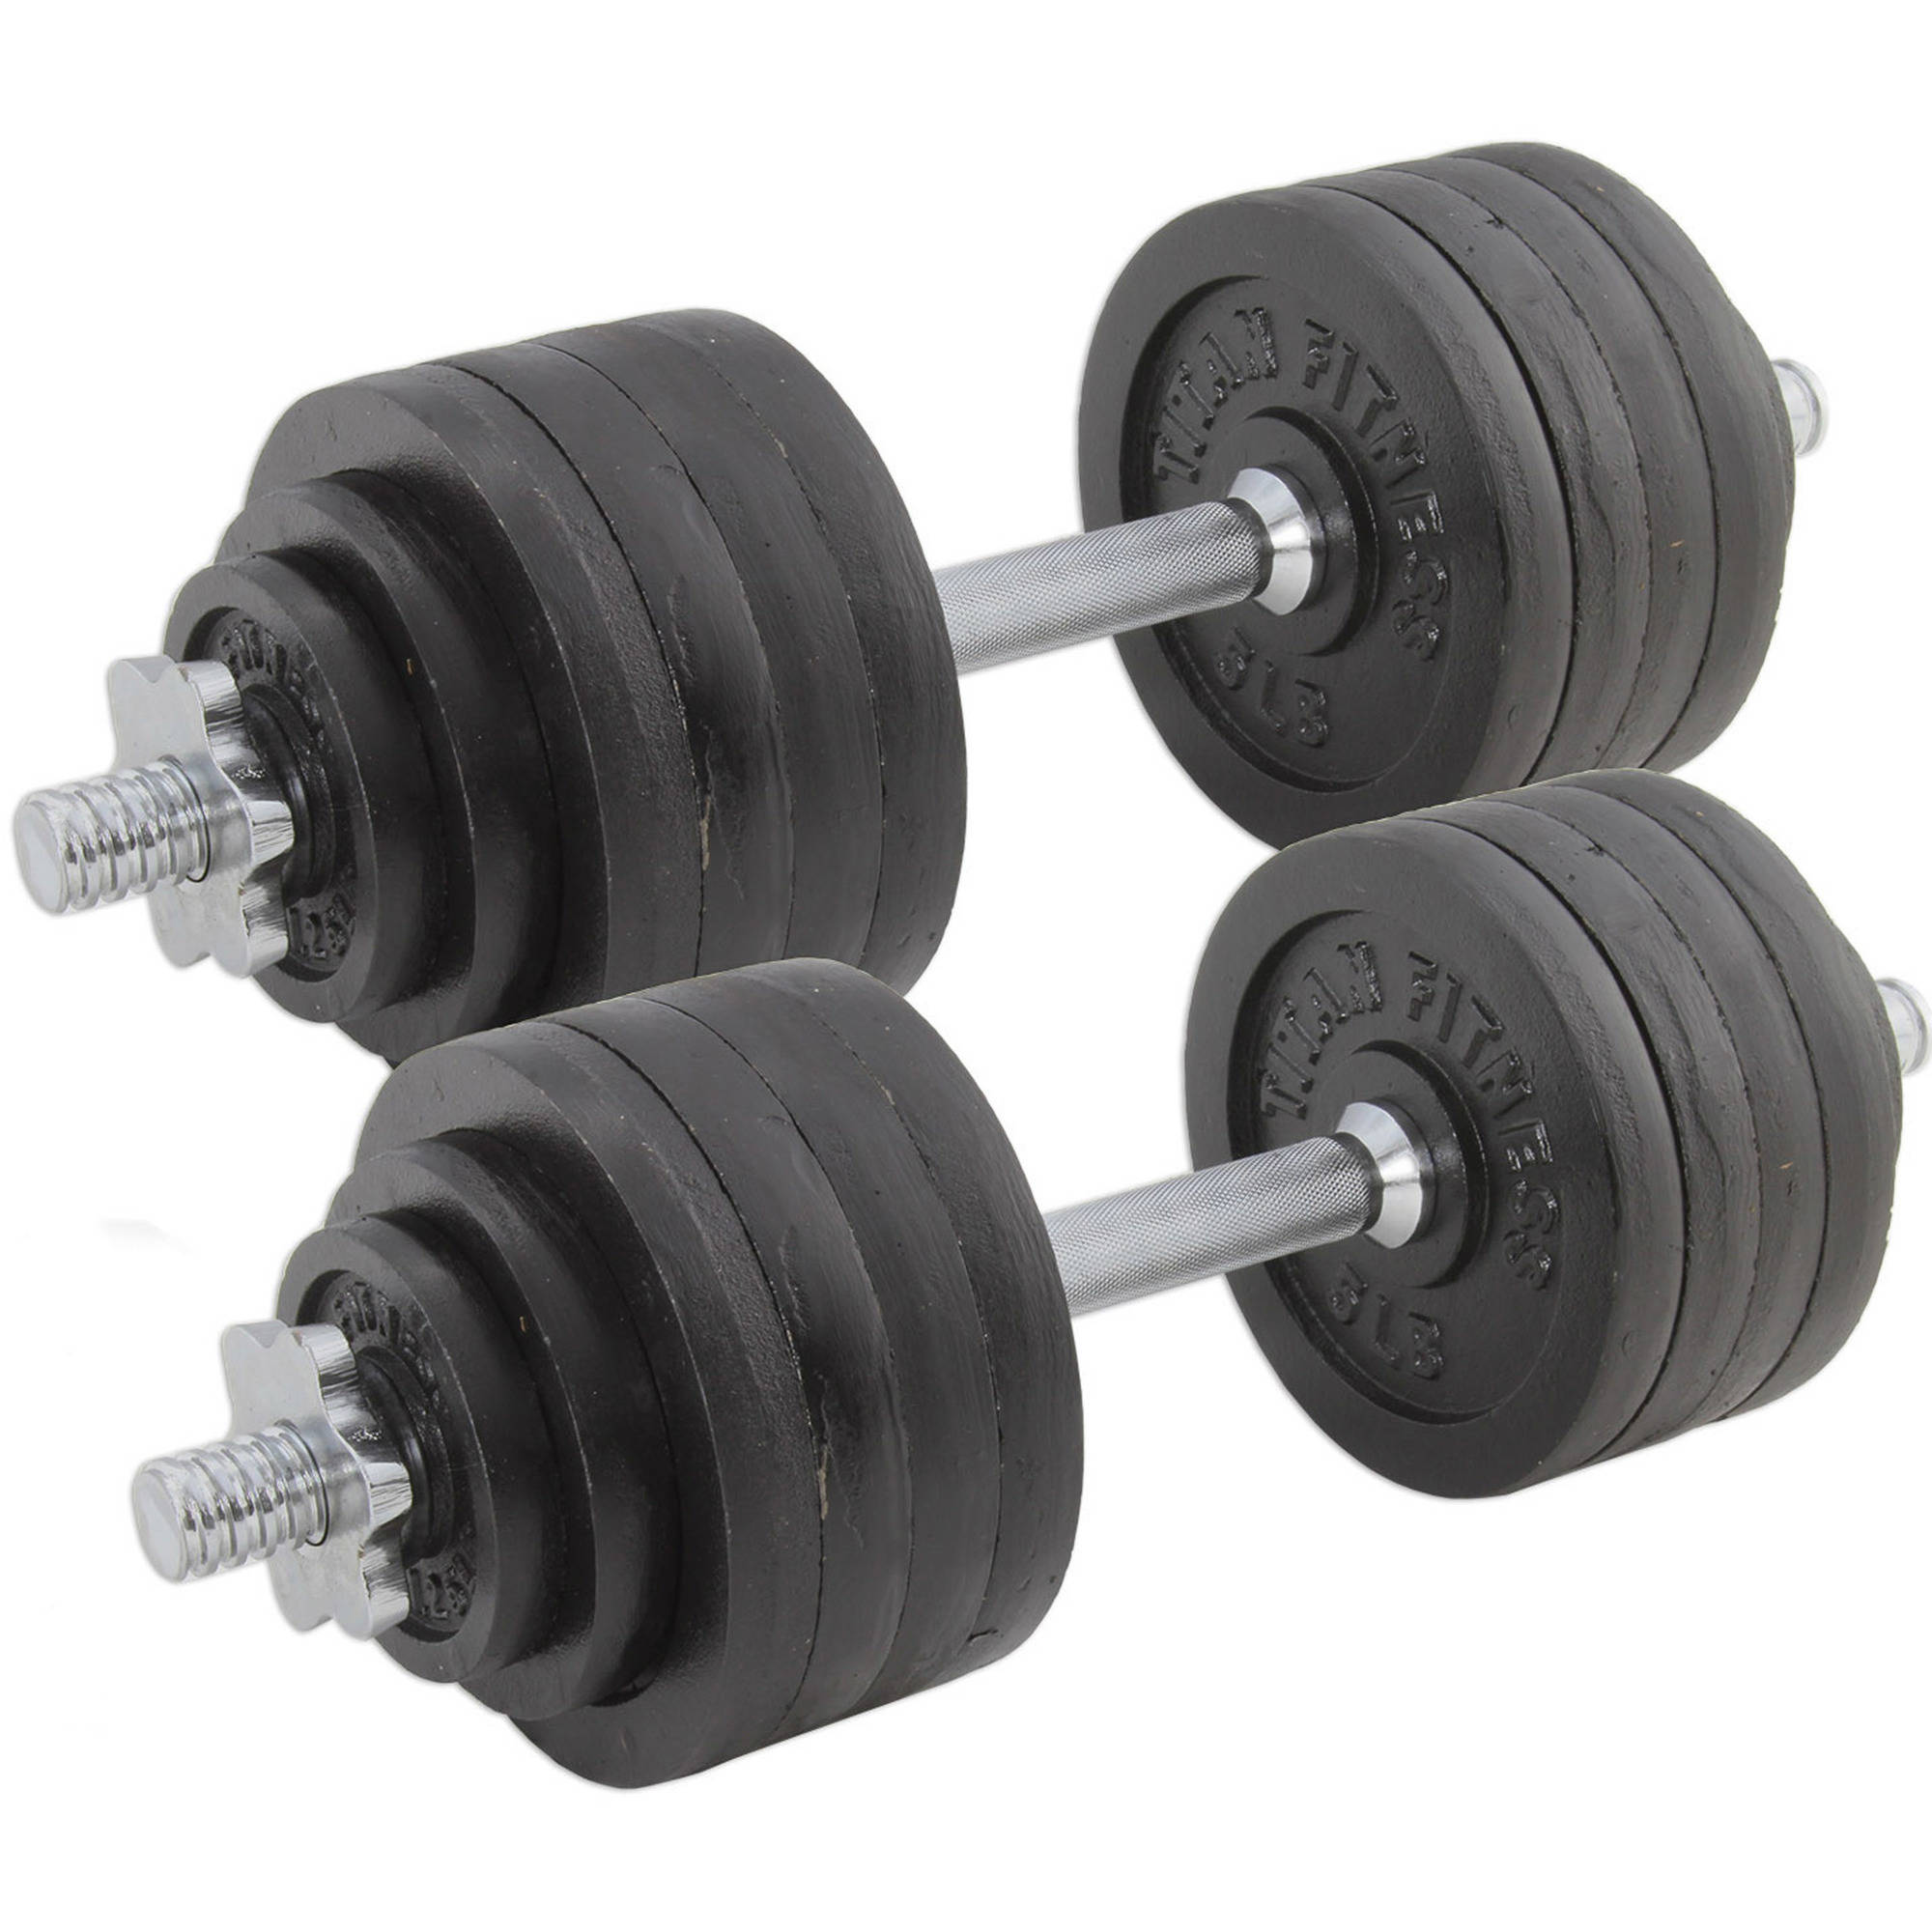 Pair of Adjustable Cast Iron Dumbbells Weight 105 lb Total